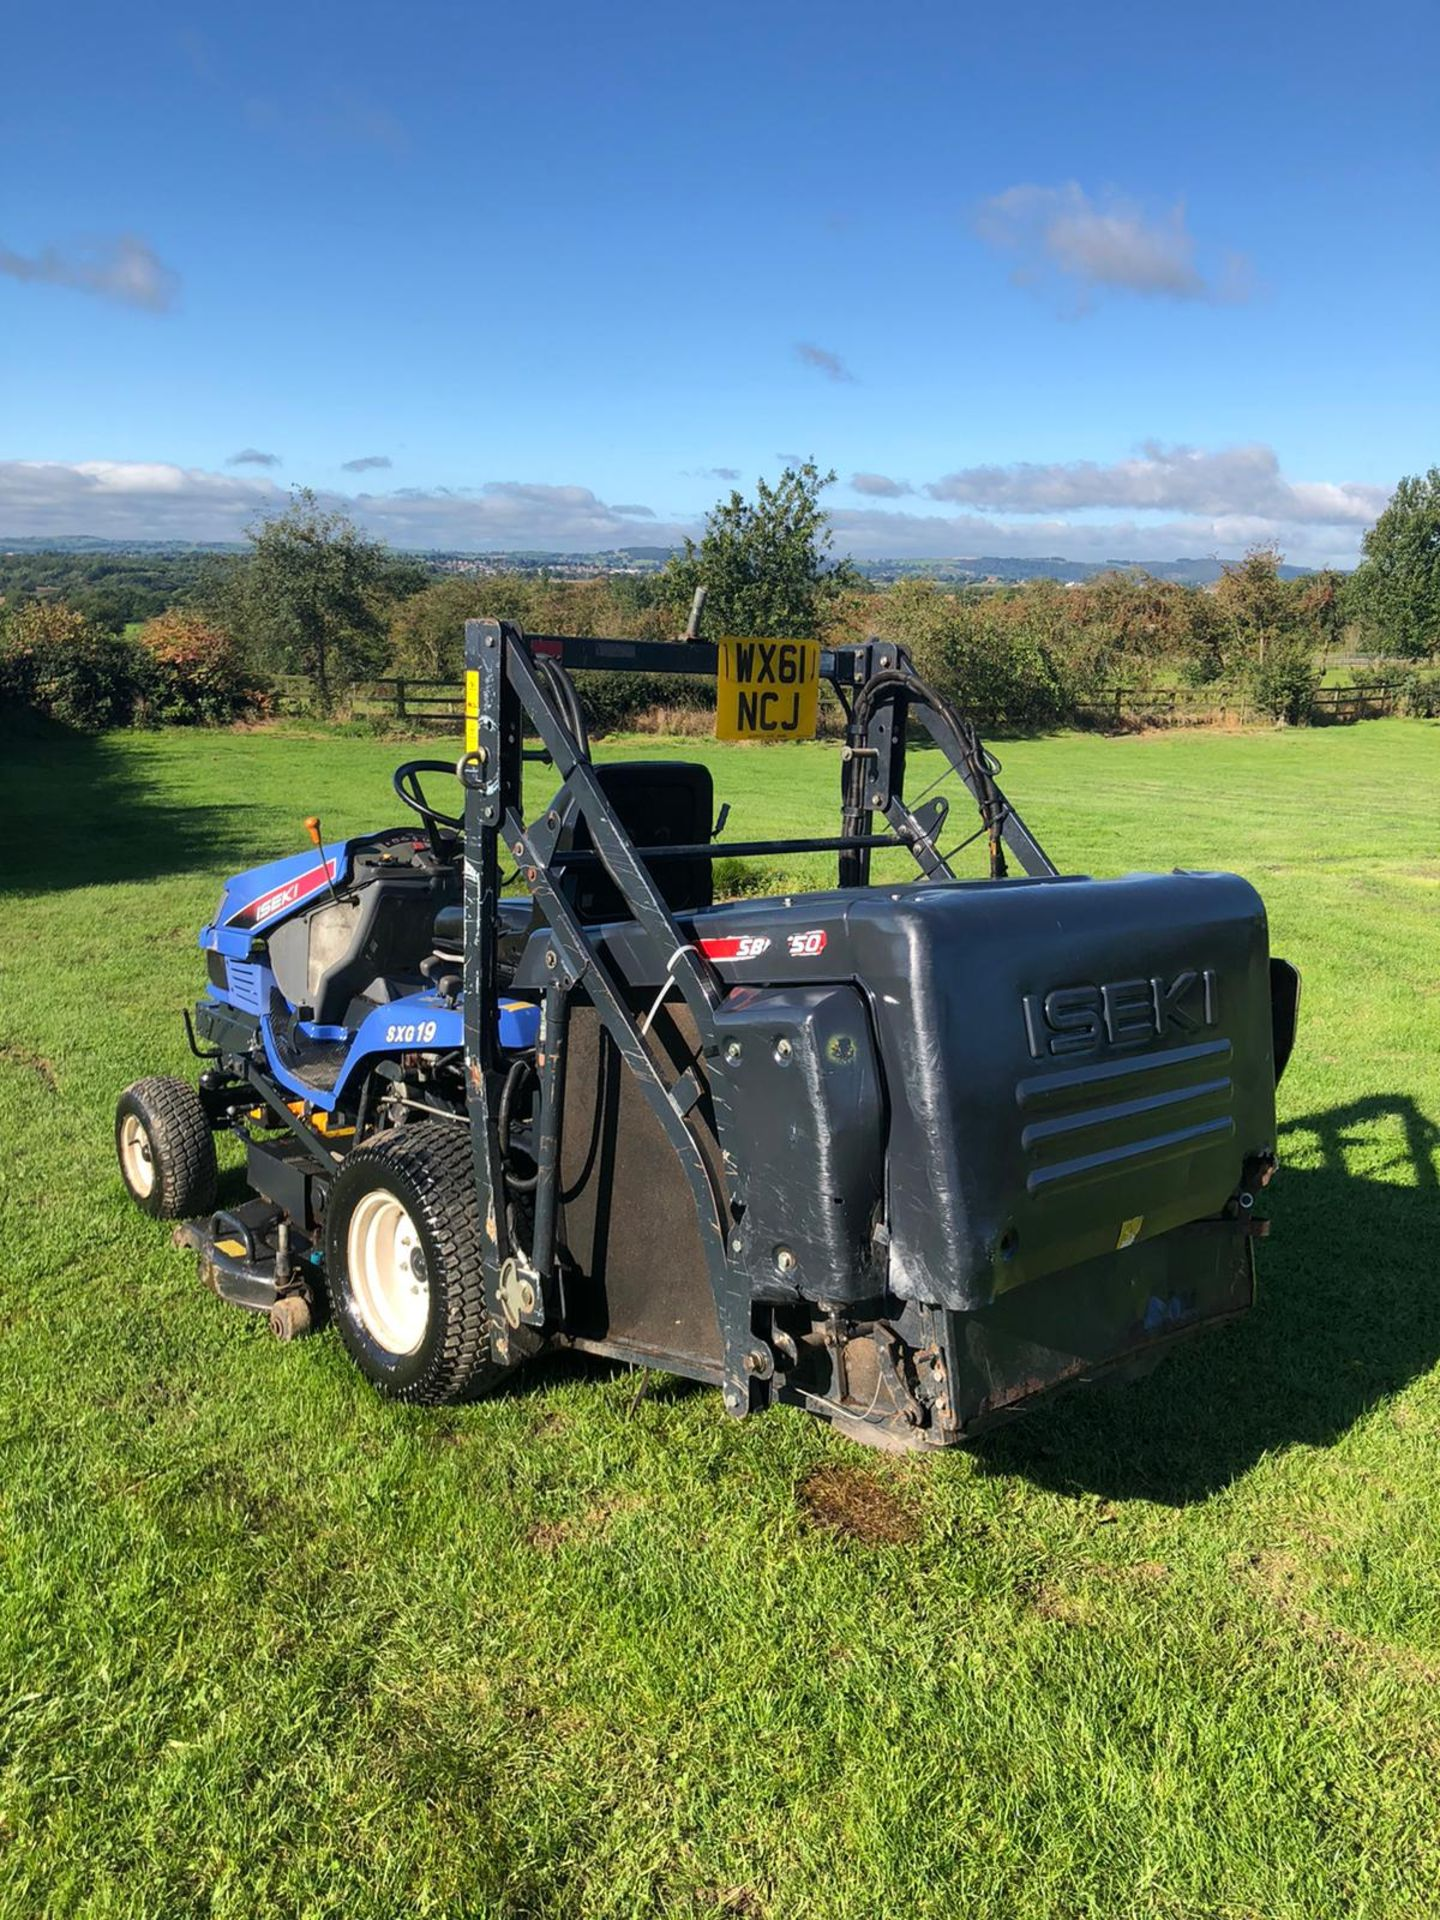 2011 ISEKI SXG19 RIDE ON LAWN MOWER, 1280 HOURS, RUNS, DRIVES AND CUTS, HIGH TIP COLLECTOR *PLUS VAT - Image 6 of 6